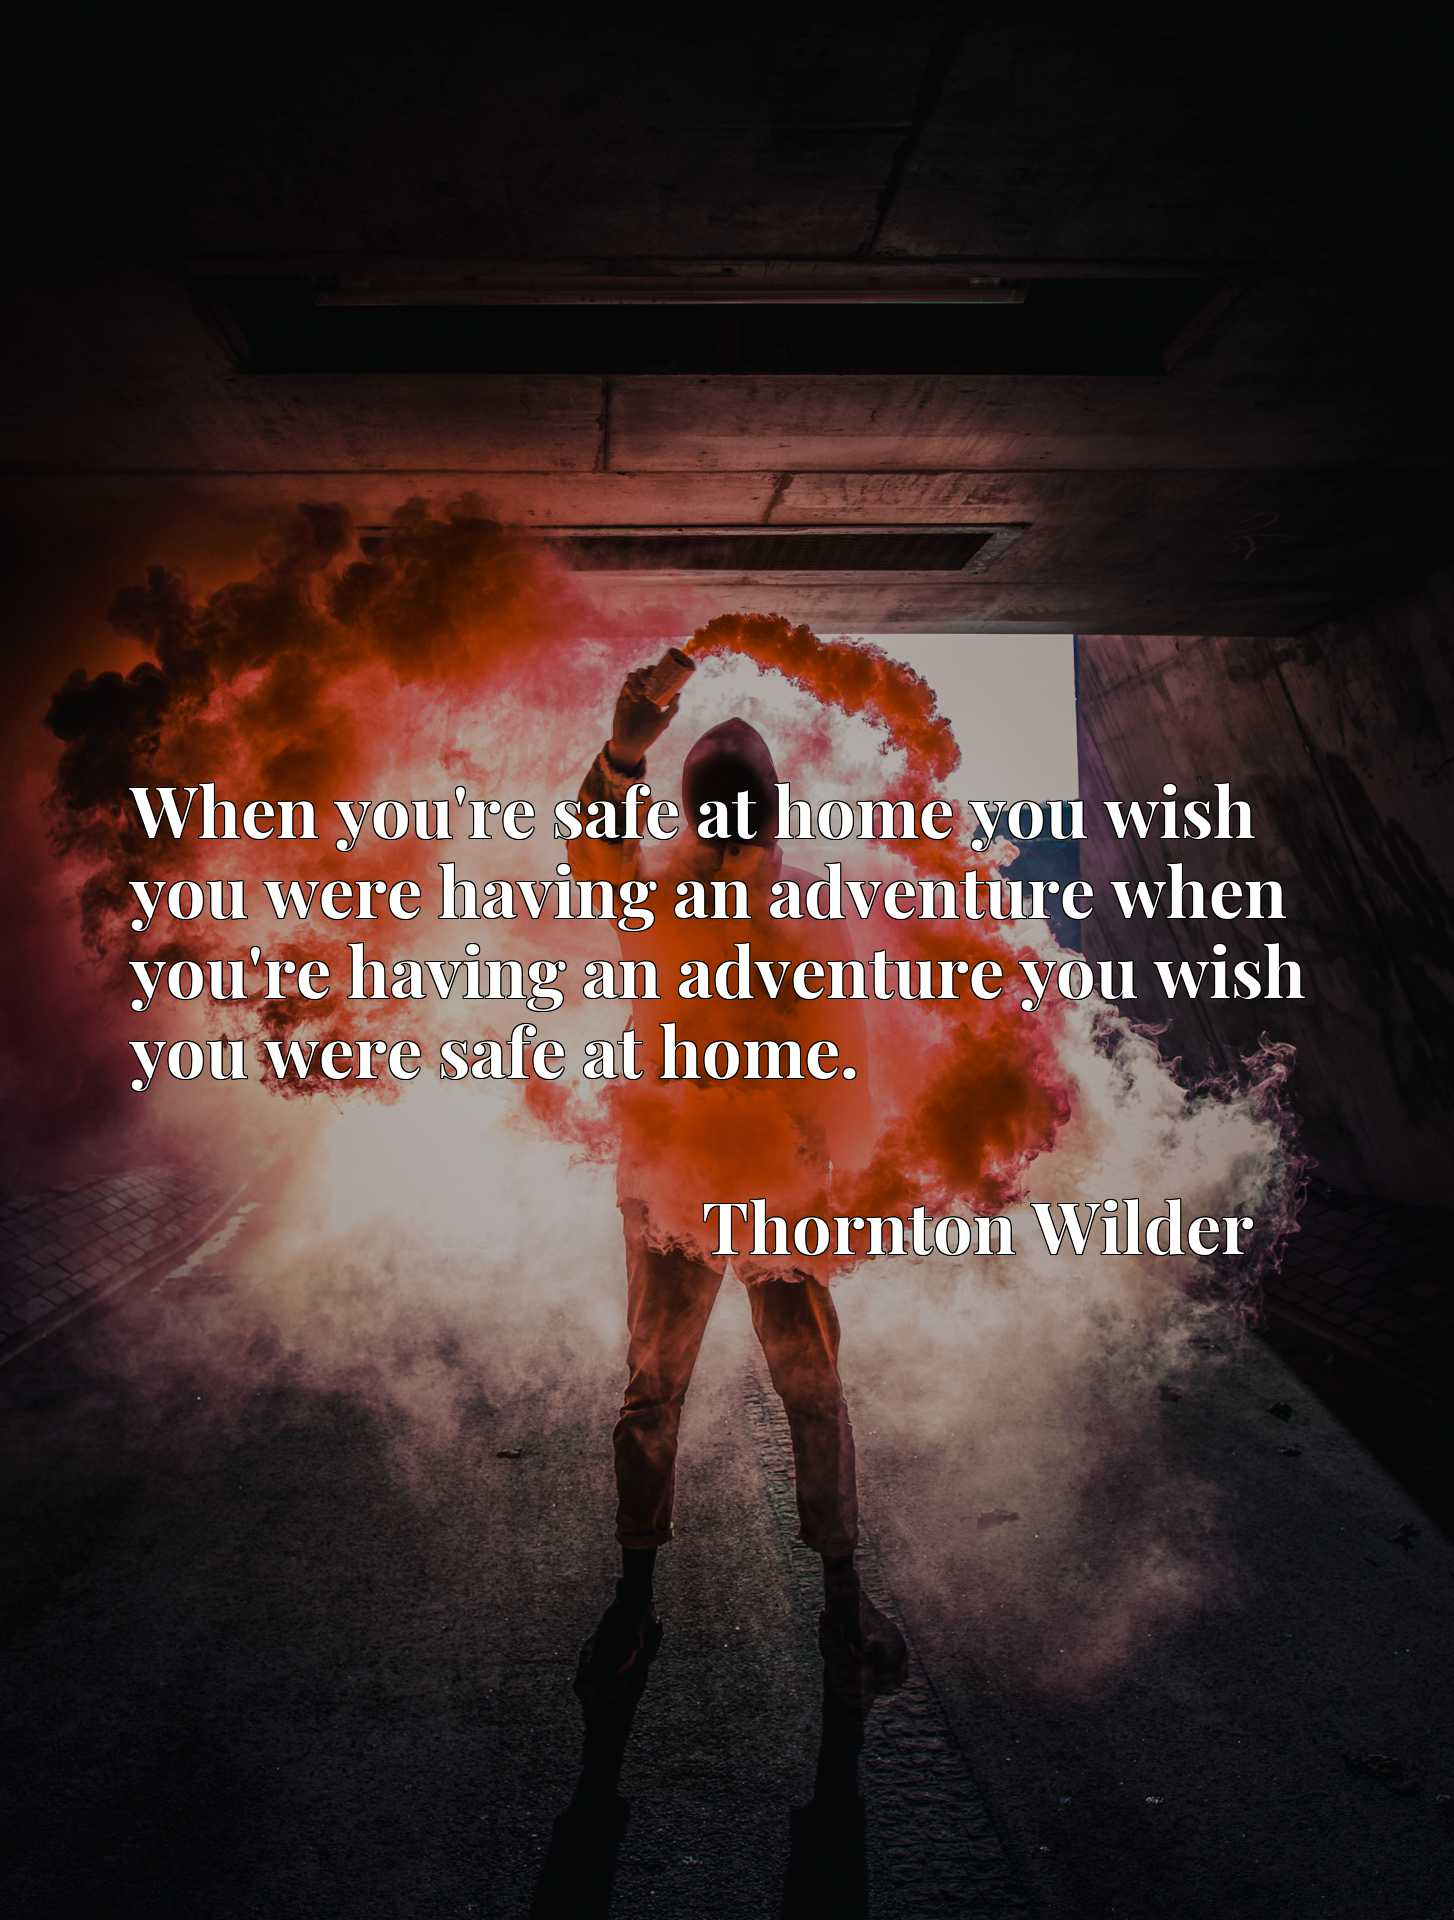 When you're safe at home you wish you were having an adventure when you're having an adventure you wish you were safe at home.